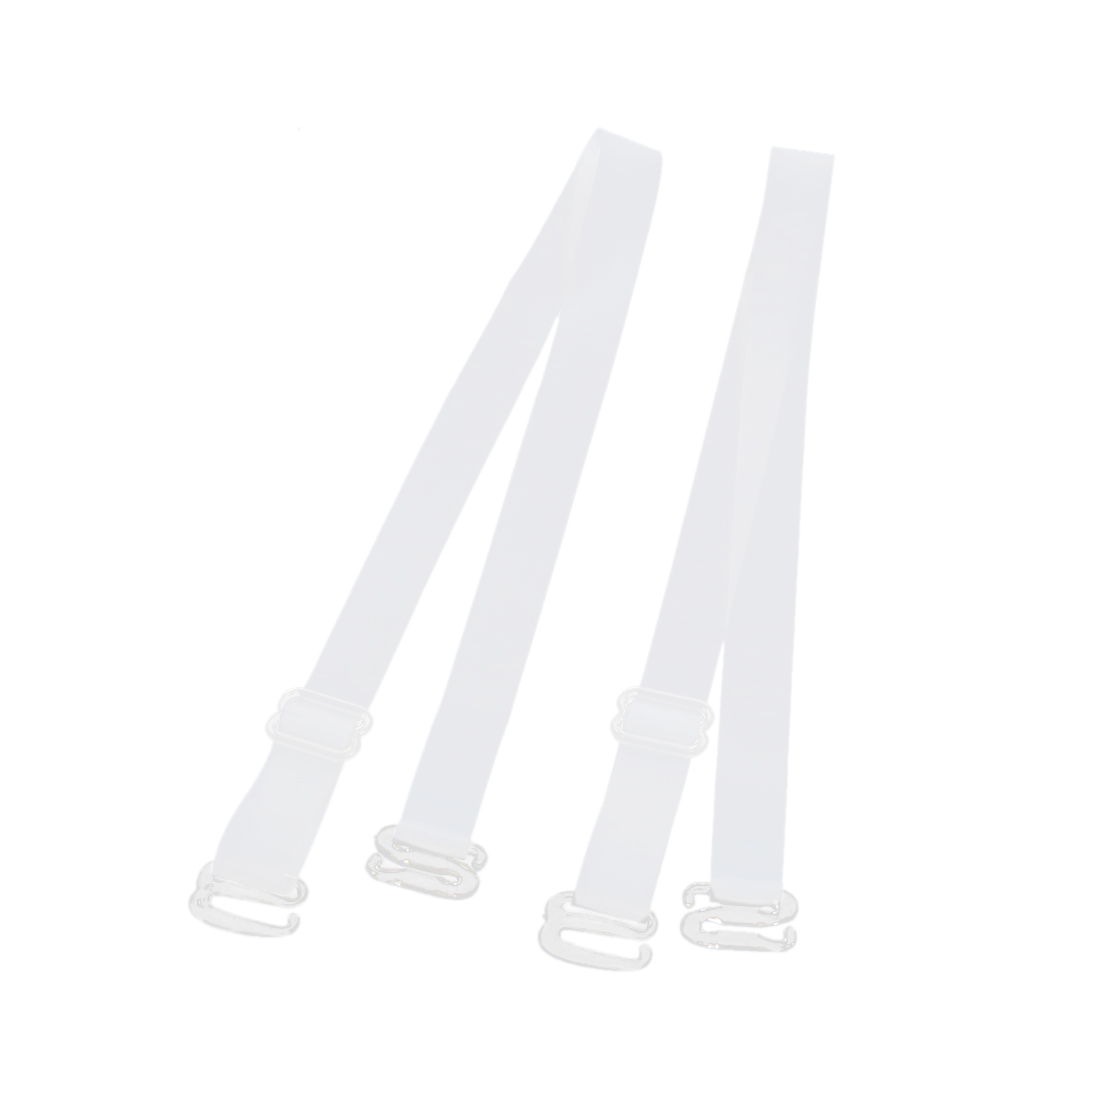 1 Pair White Silicone Nonslip Adjustable 13mm Width Invisible Underwear Bra Shoulder Straps for Women